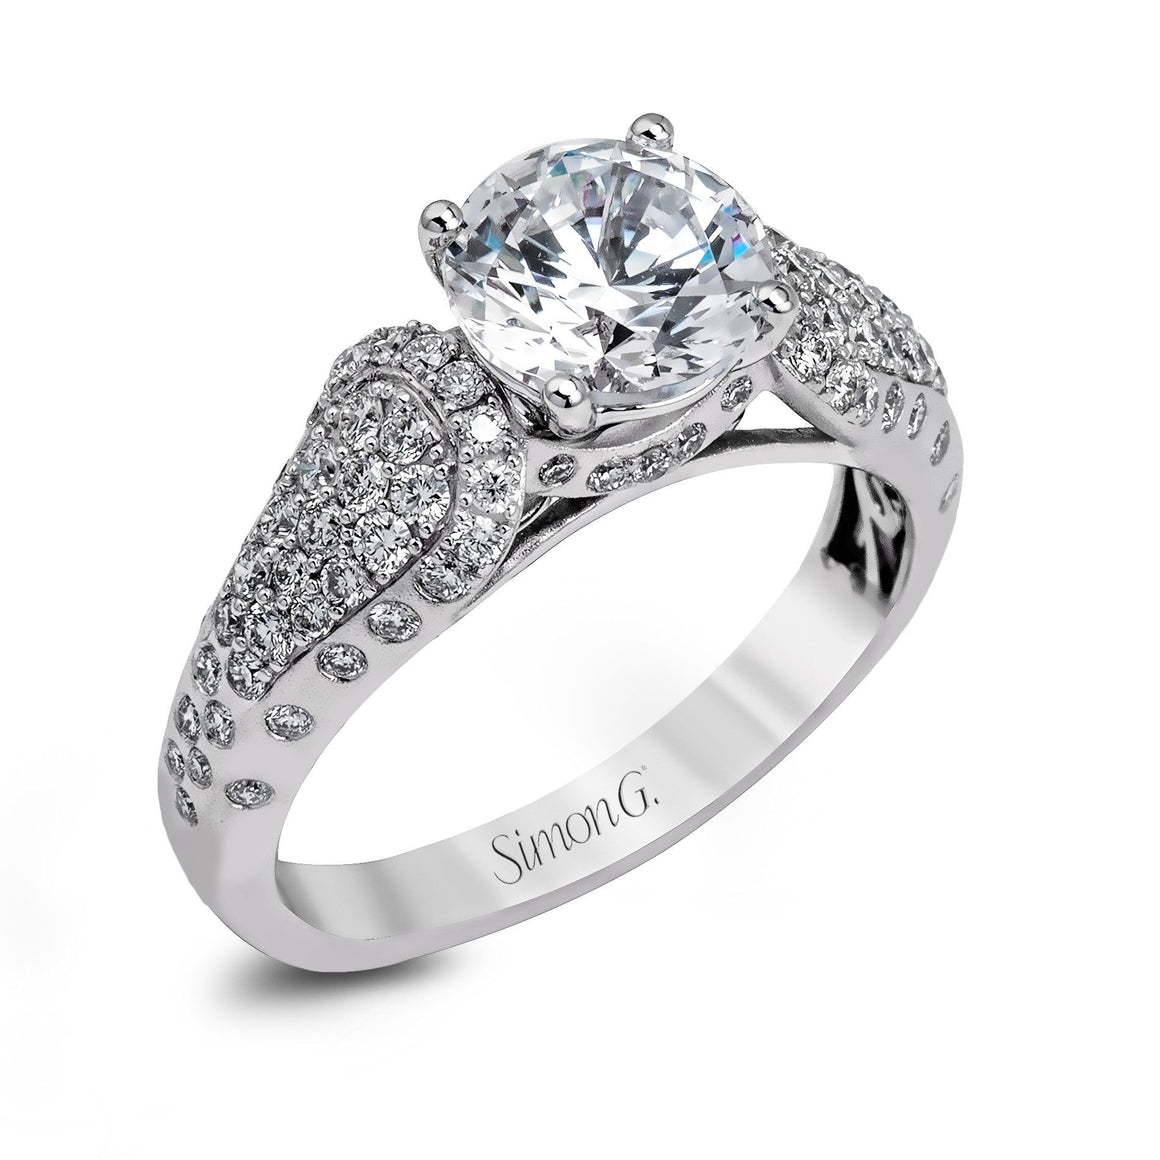 Simon G - DR332, Engagement Ring, Simon G - Birmingham Jewelry